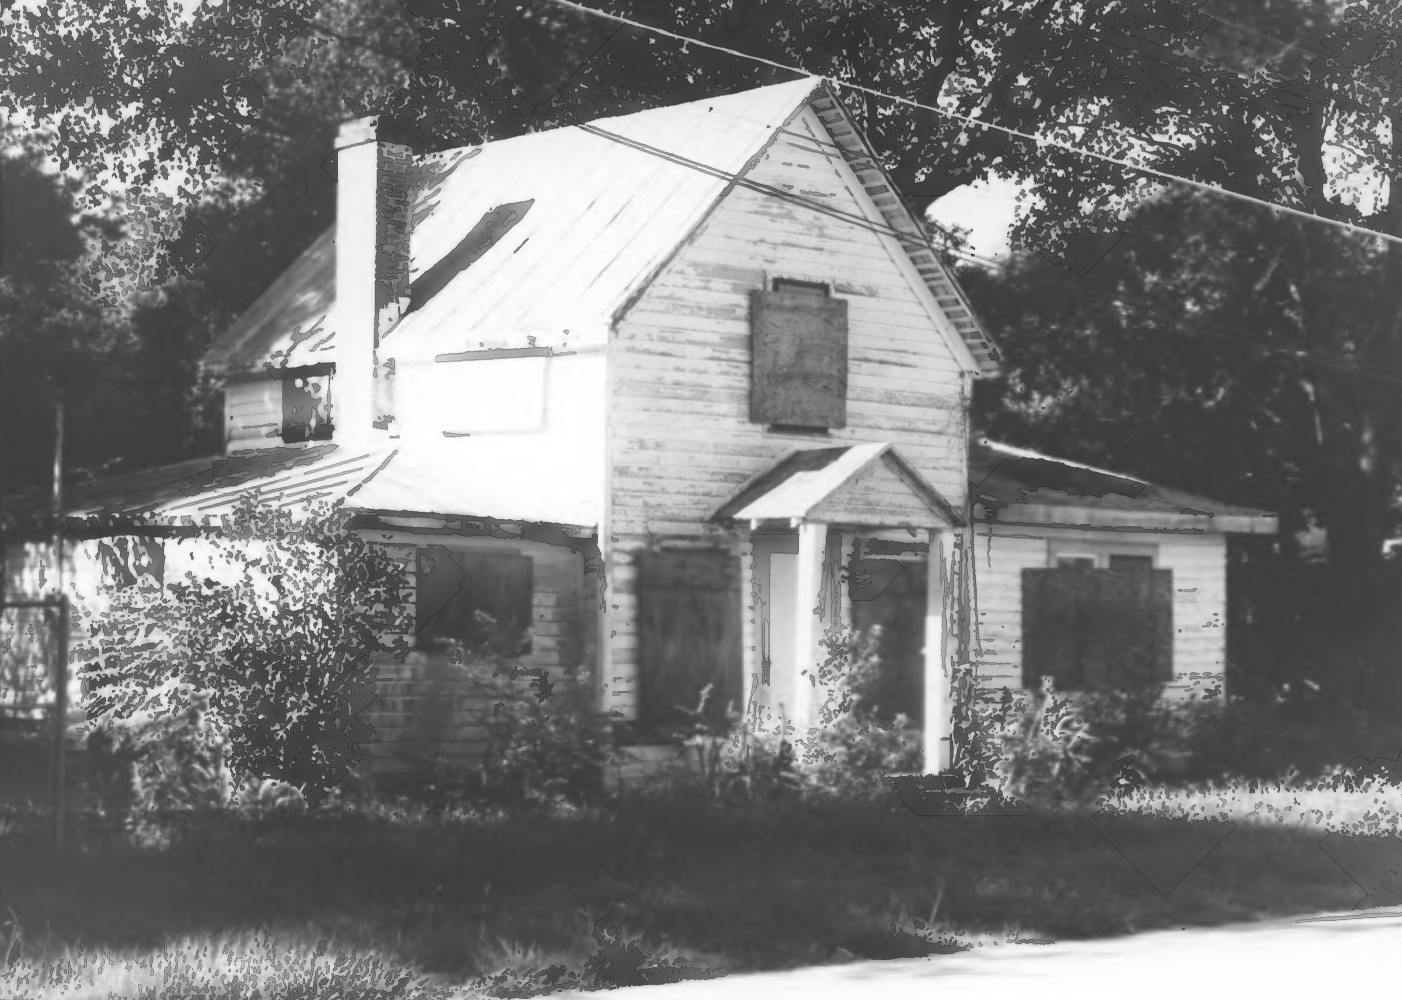 As seen in 1990 with the Longwood Historic District filing. Building was in a terrible state of disrepair.